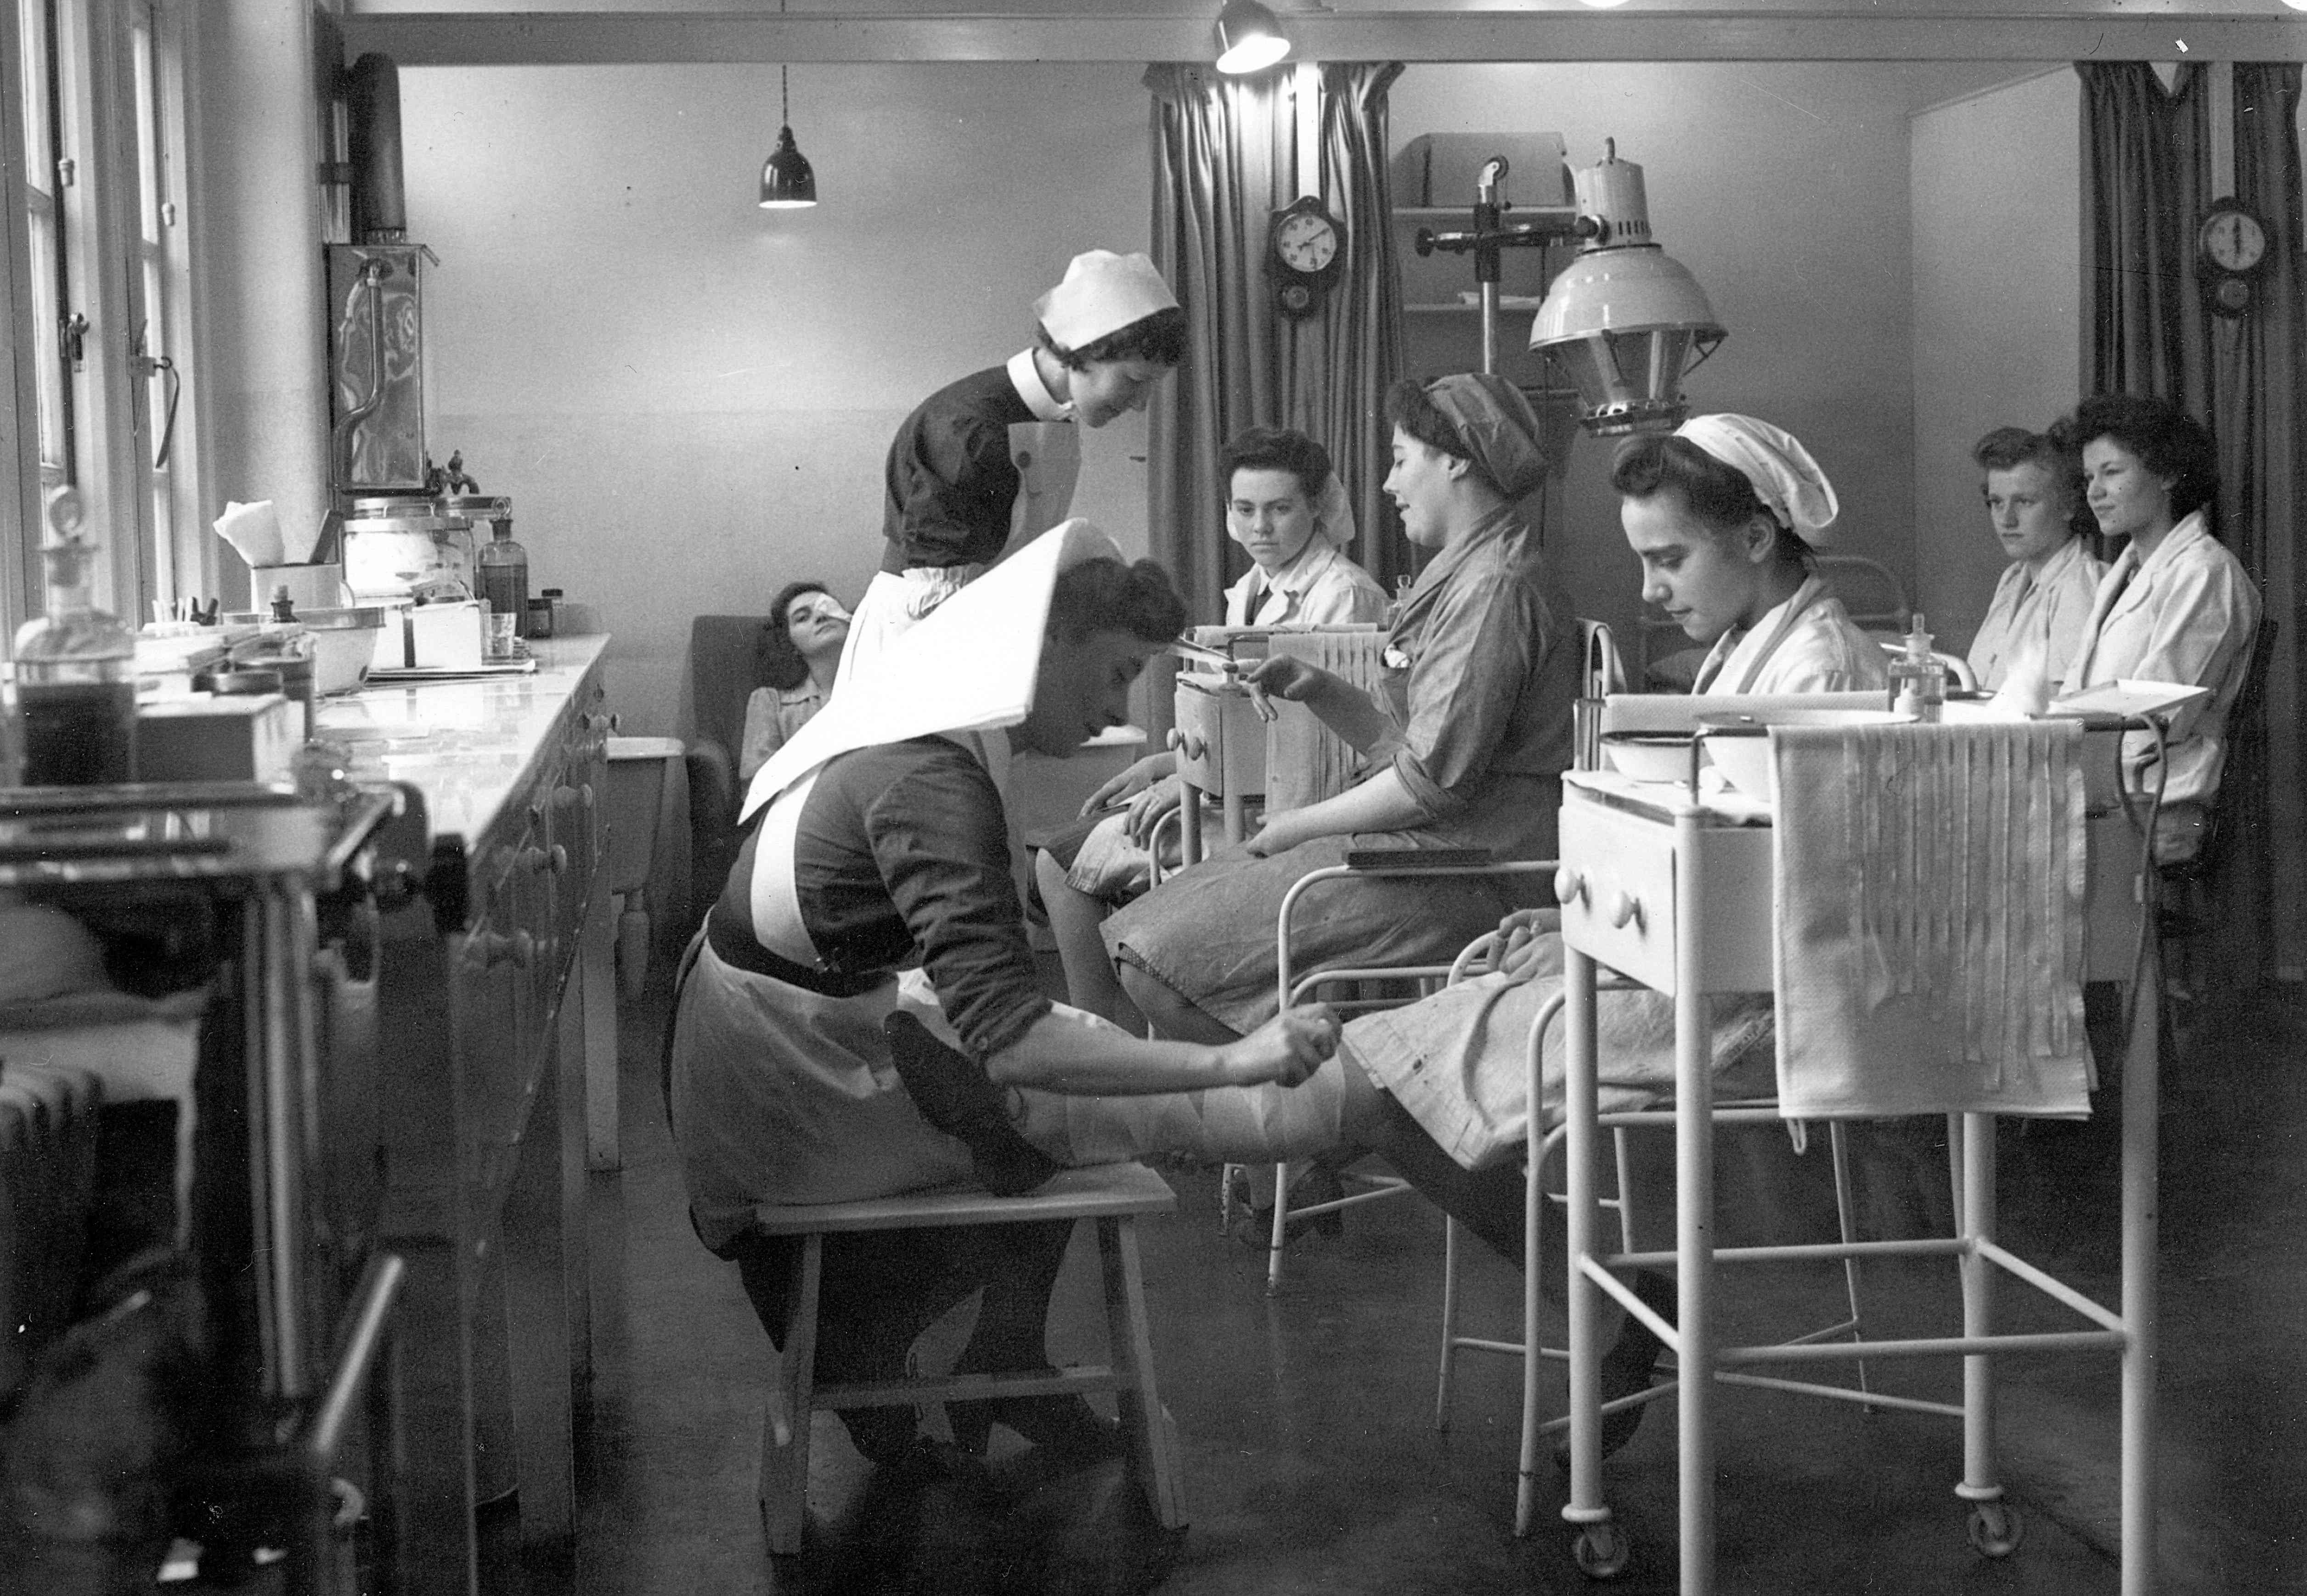 Nurses working in a old hospital